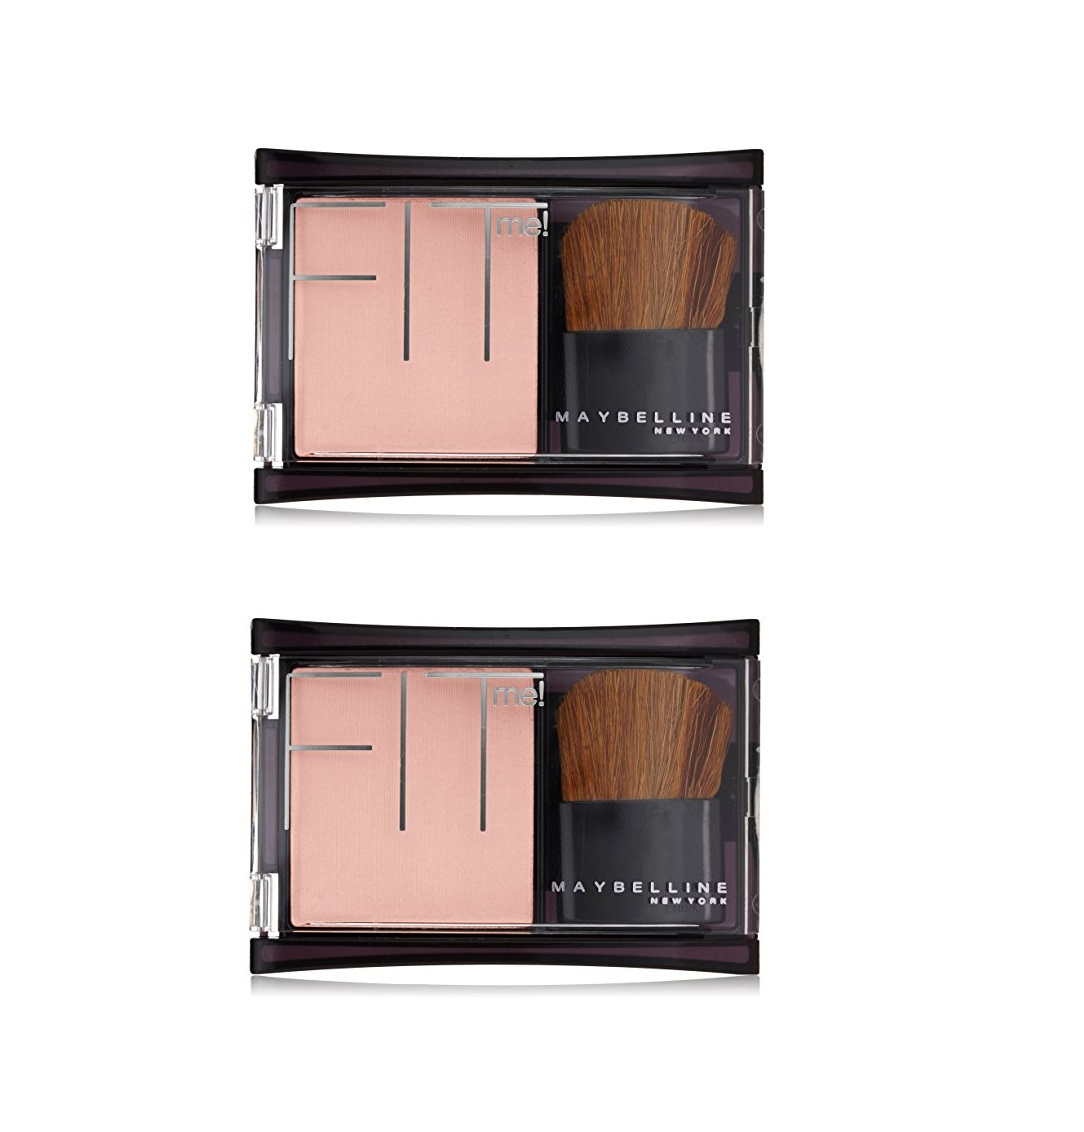 Maybelline FIT Me! Blush #104 Light Pink (Pack of 2)